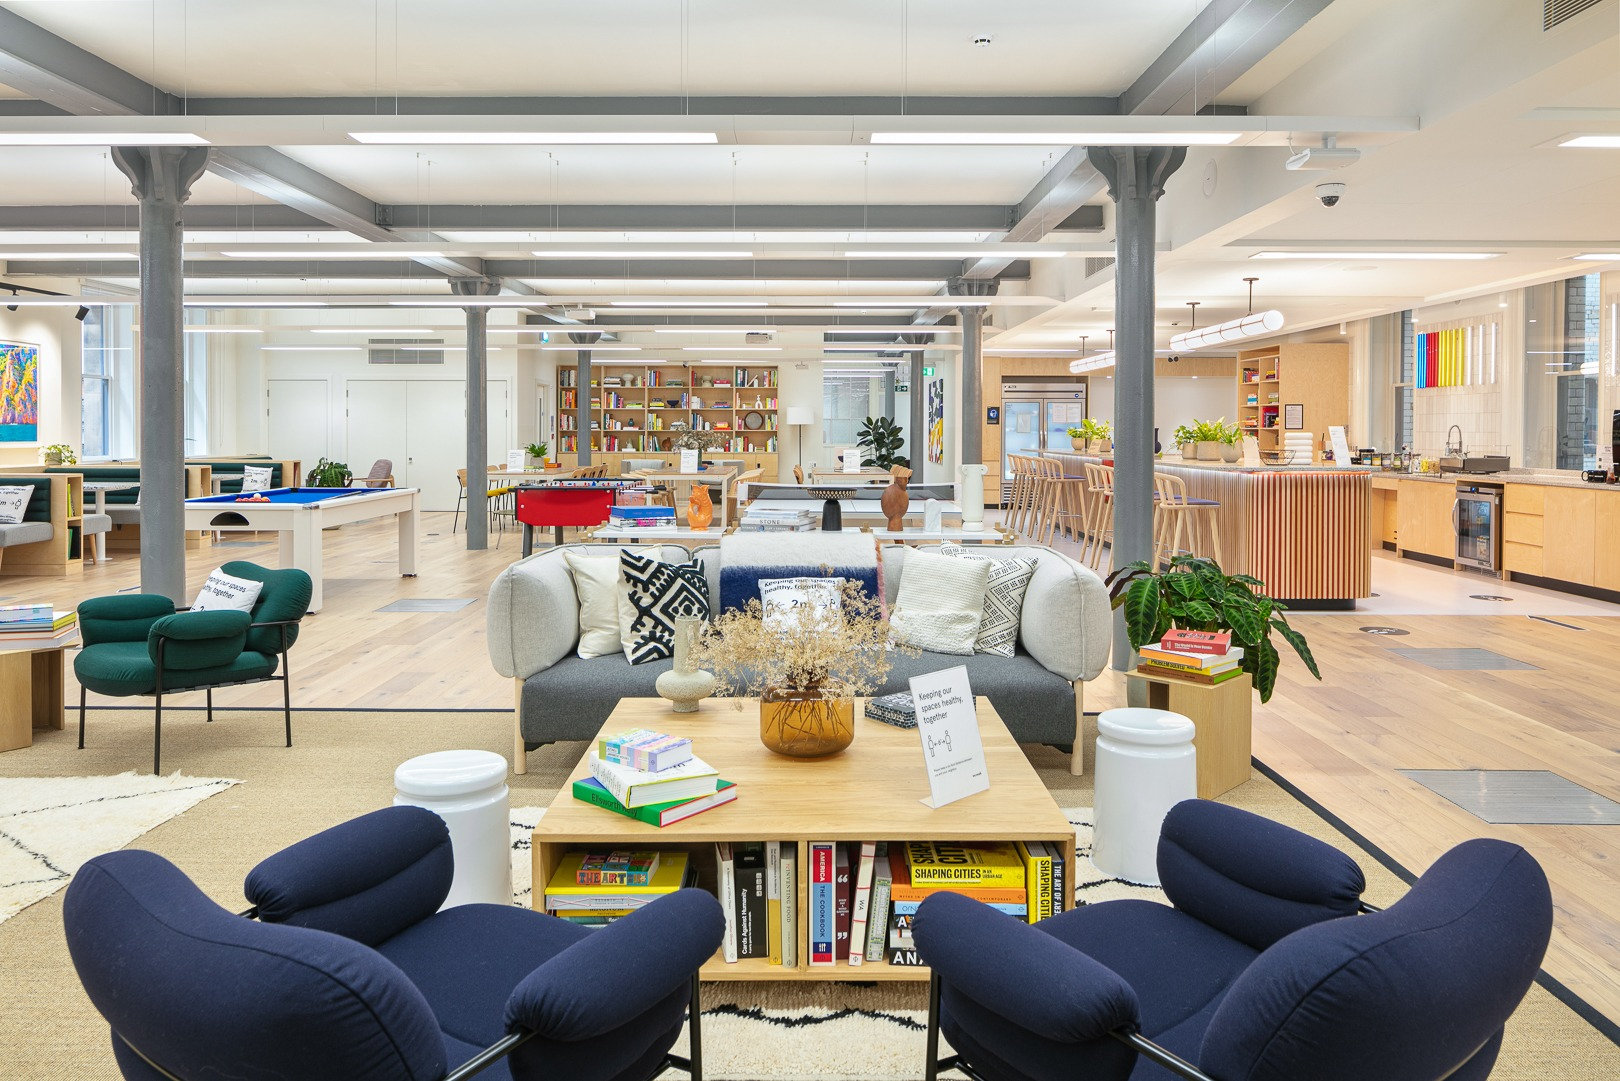 Flexible workspaces - What's their value?